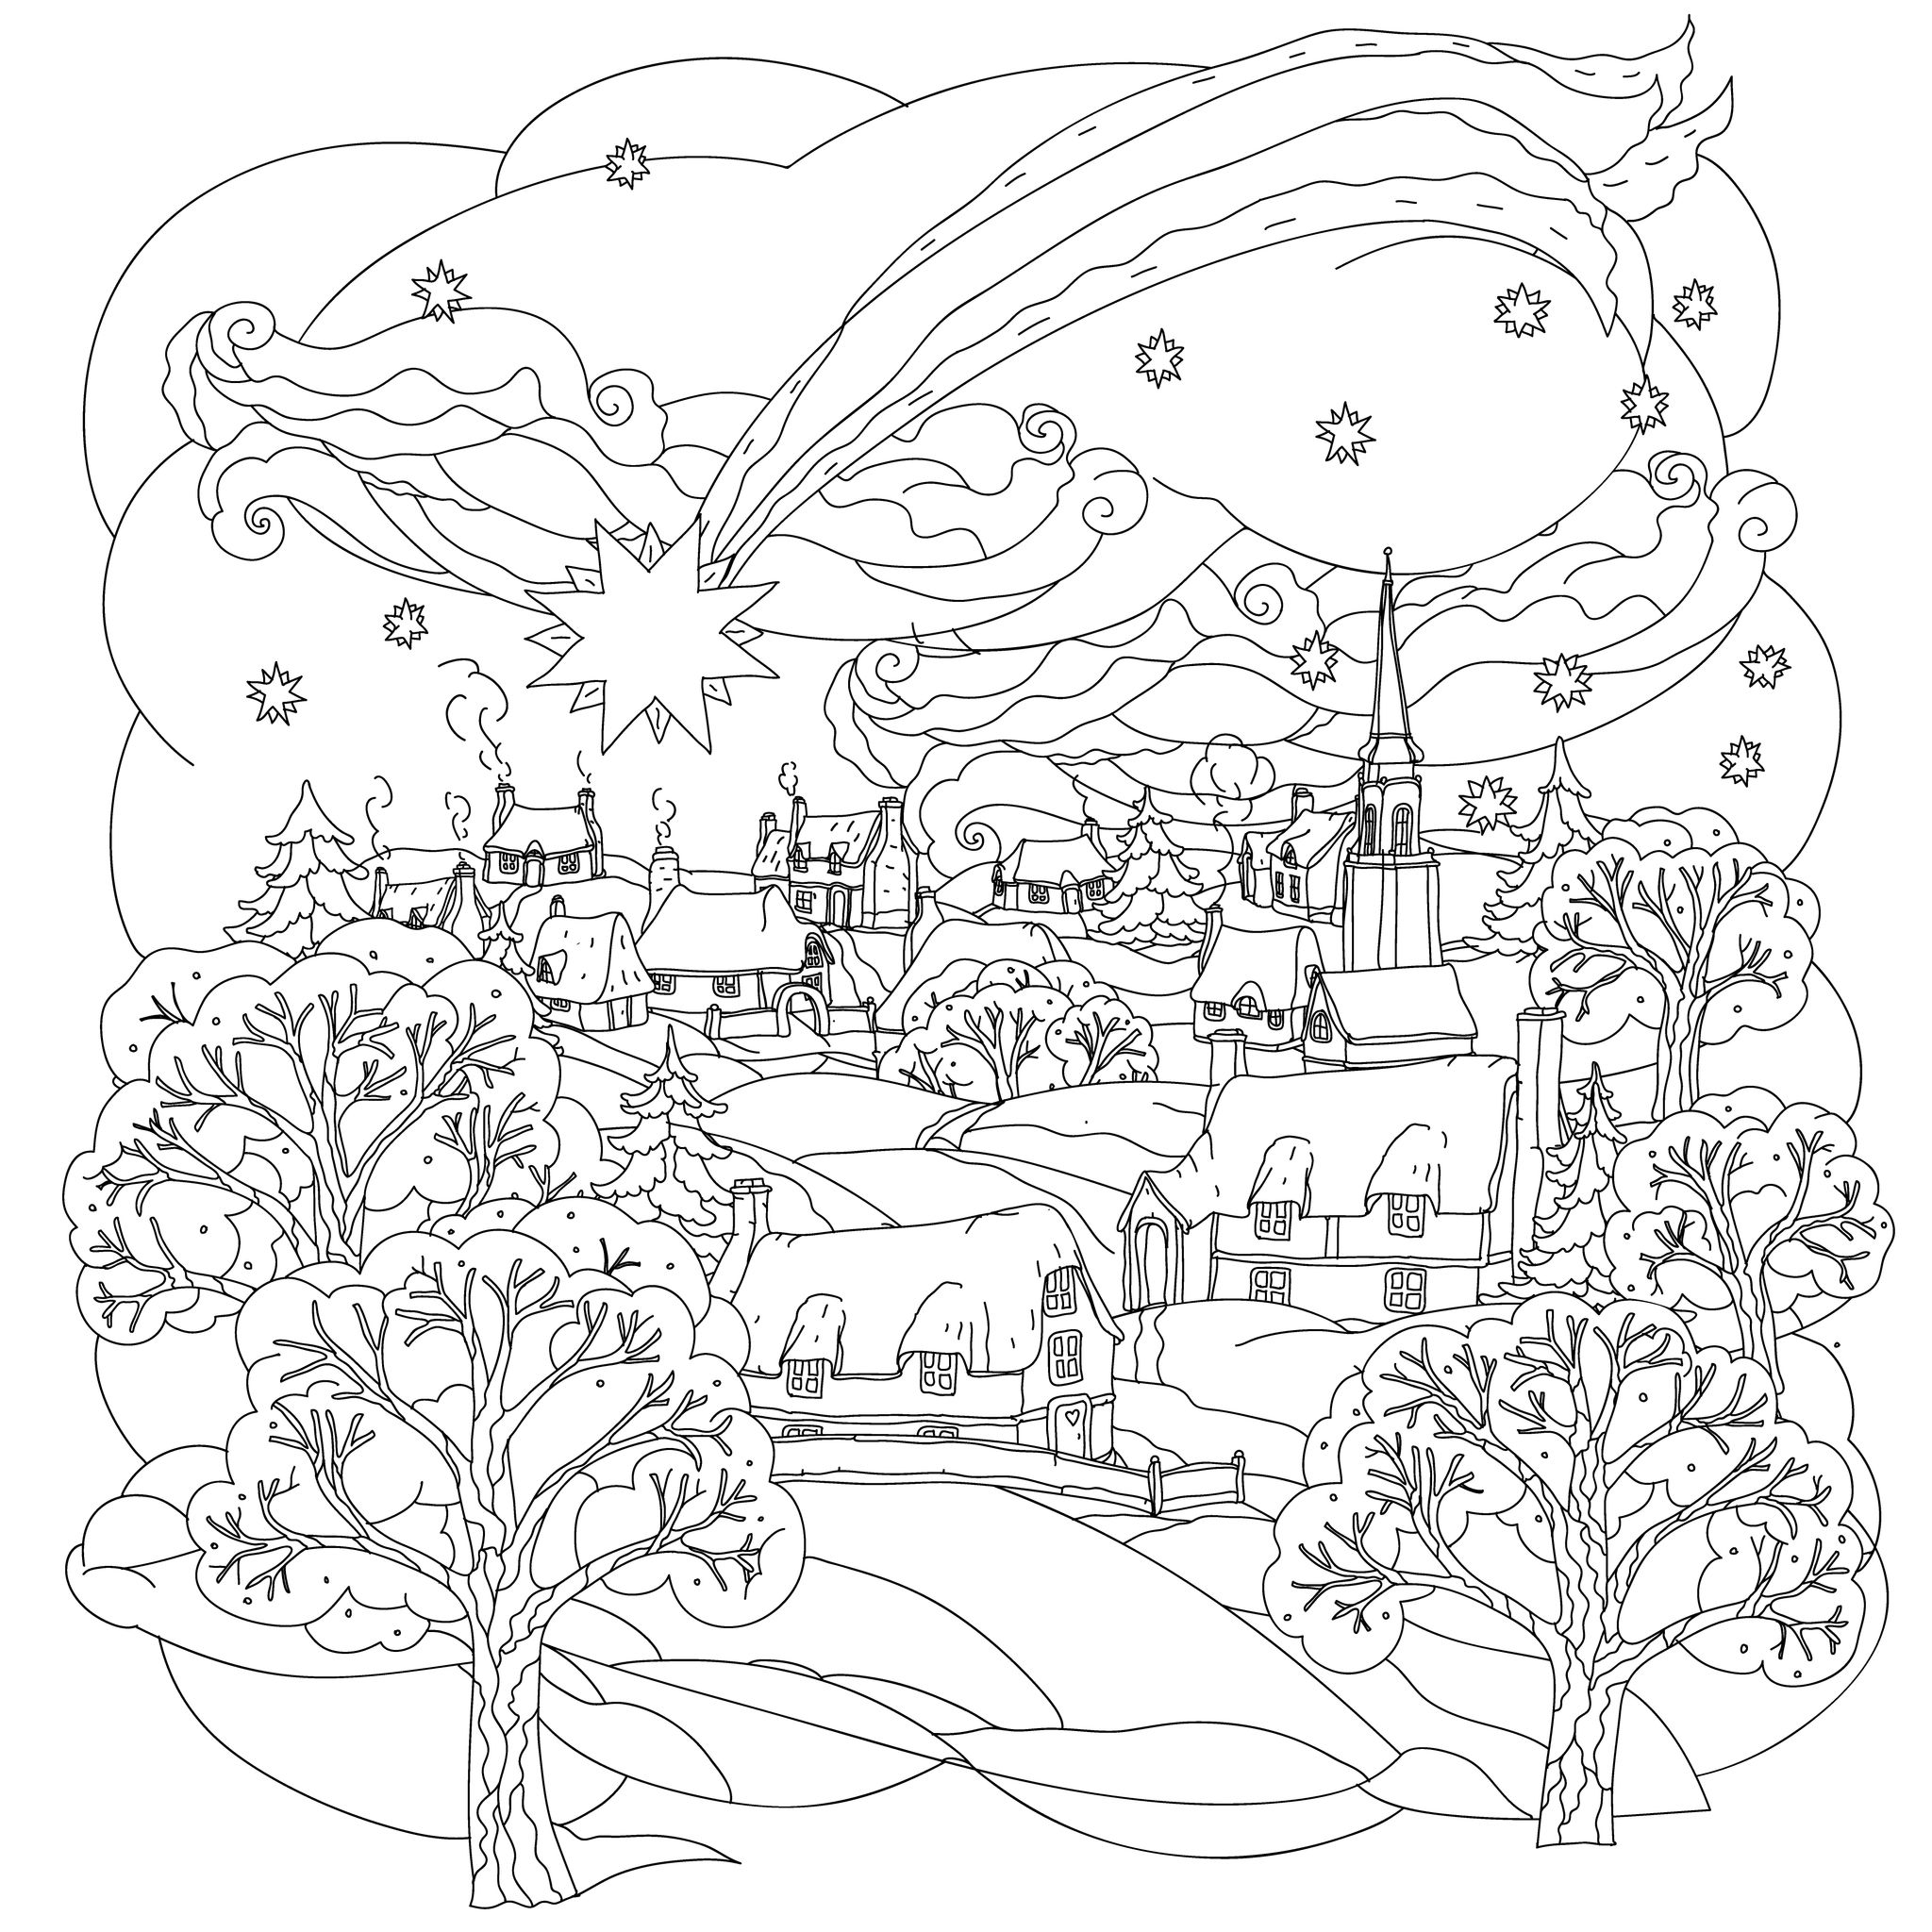 print - Winter Coloring Pages For Adults